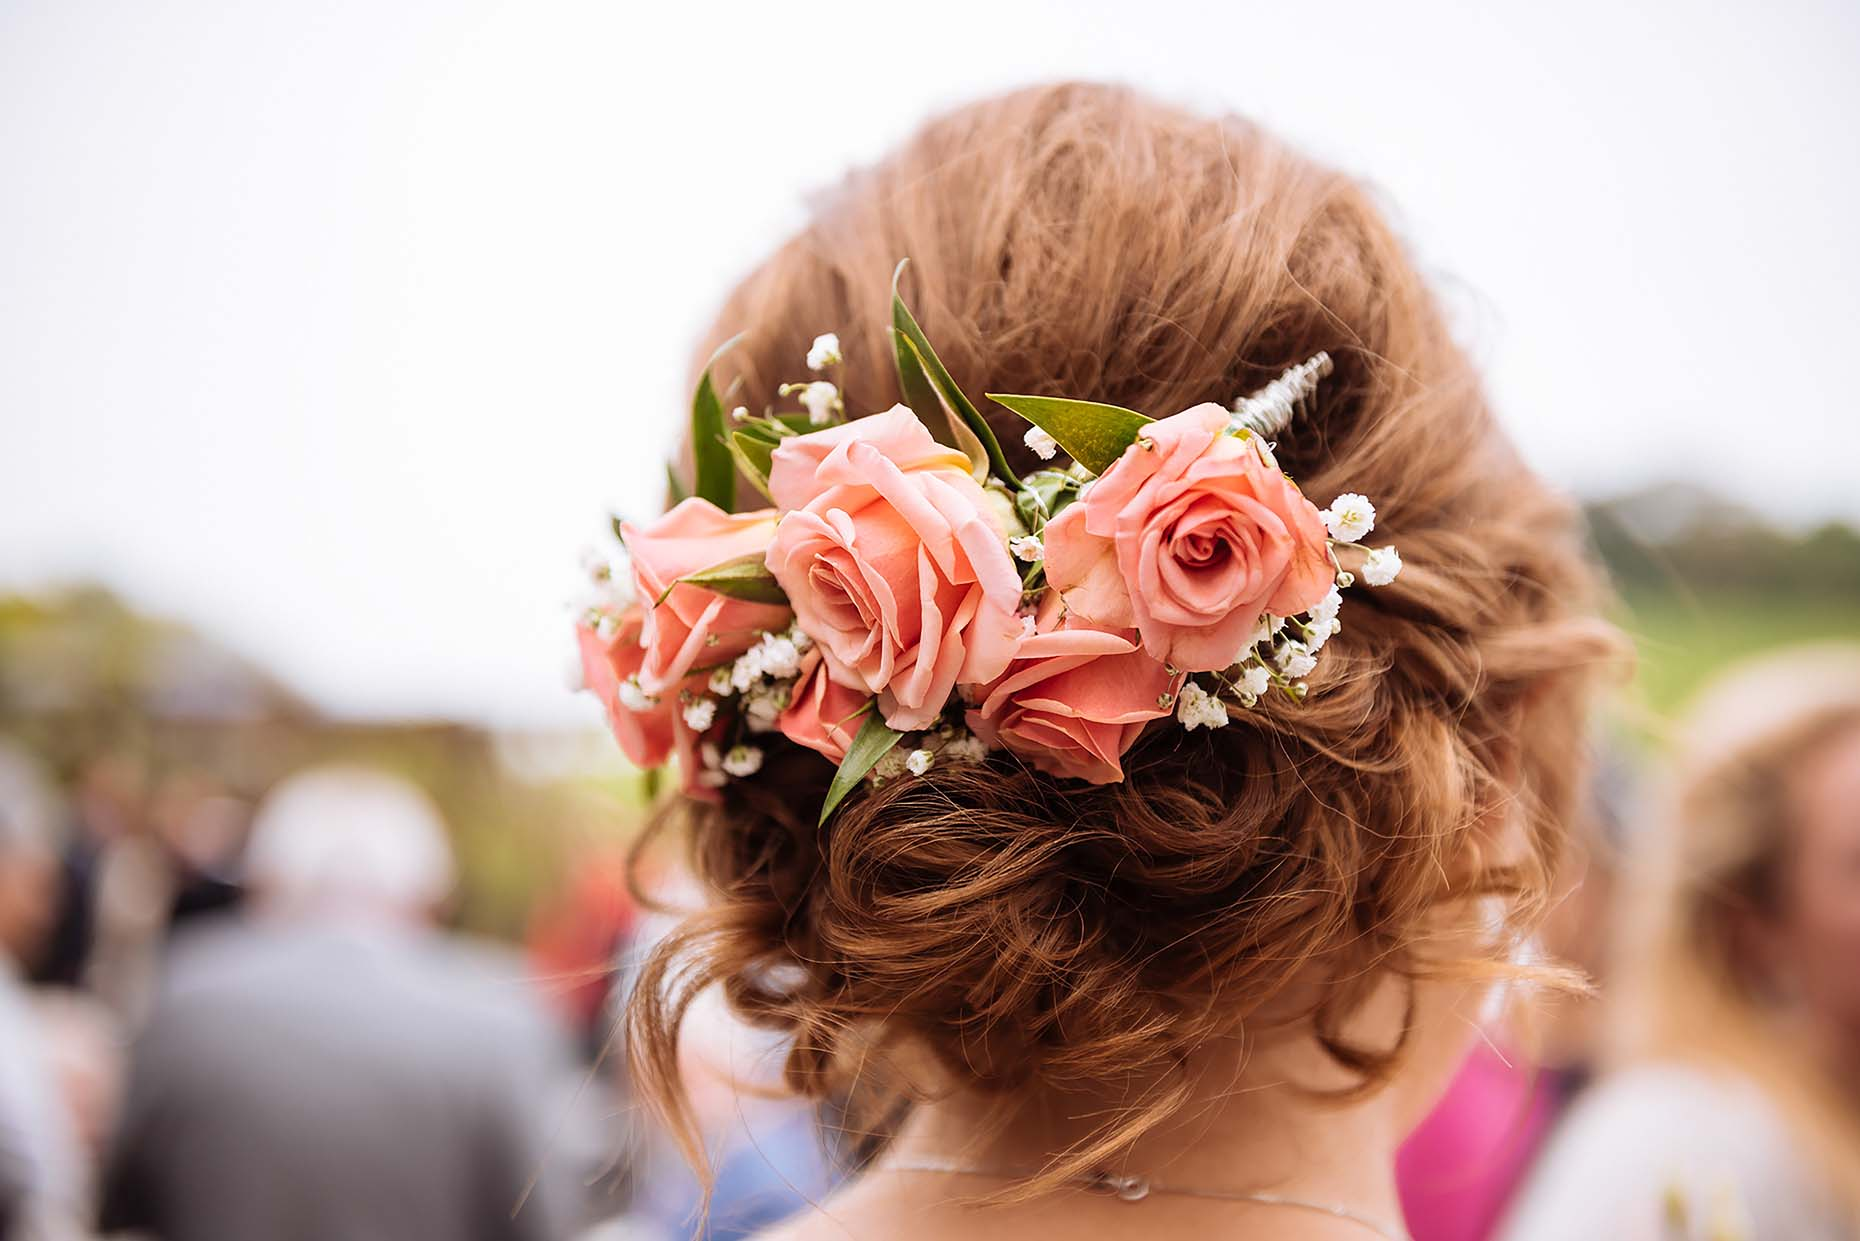 flowers-in-hair-wedding-style-floral-dorset-photographer-24